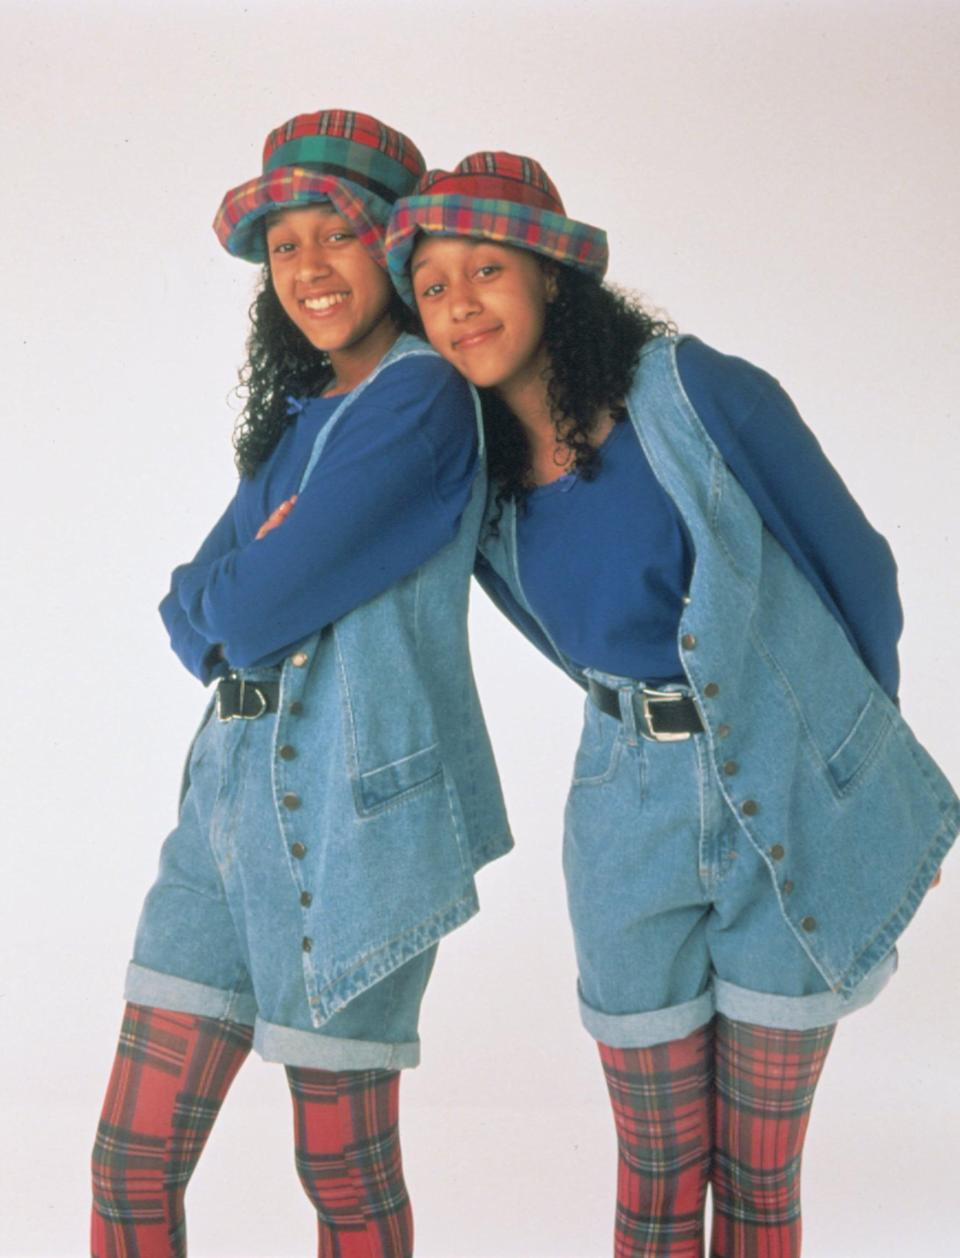 <ul> <li><strong>What to wear for Tia:</strong> A blue long-sleeved shirt, denim vest, high-waisted shorts with a belt, and plaid leggings with a matching hat.</li> <li><strong>What to wear for Tamera:</strong> Match with Tia!</li> </ul>